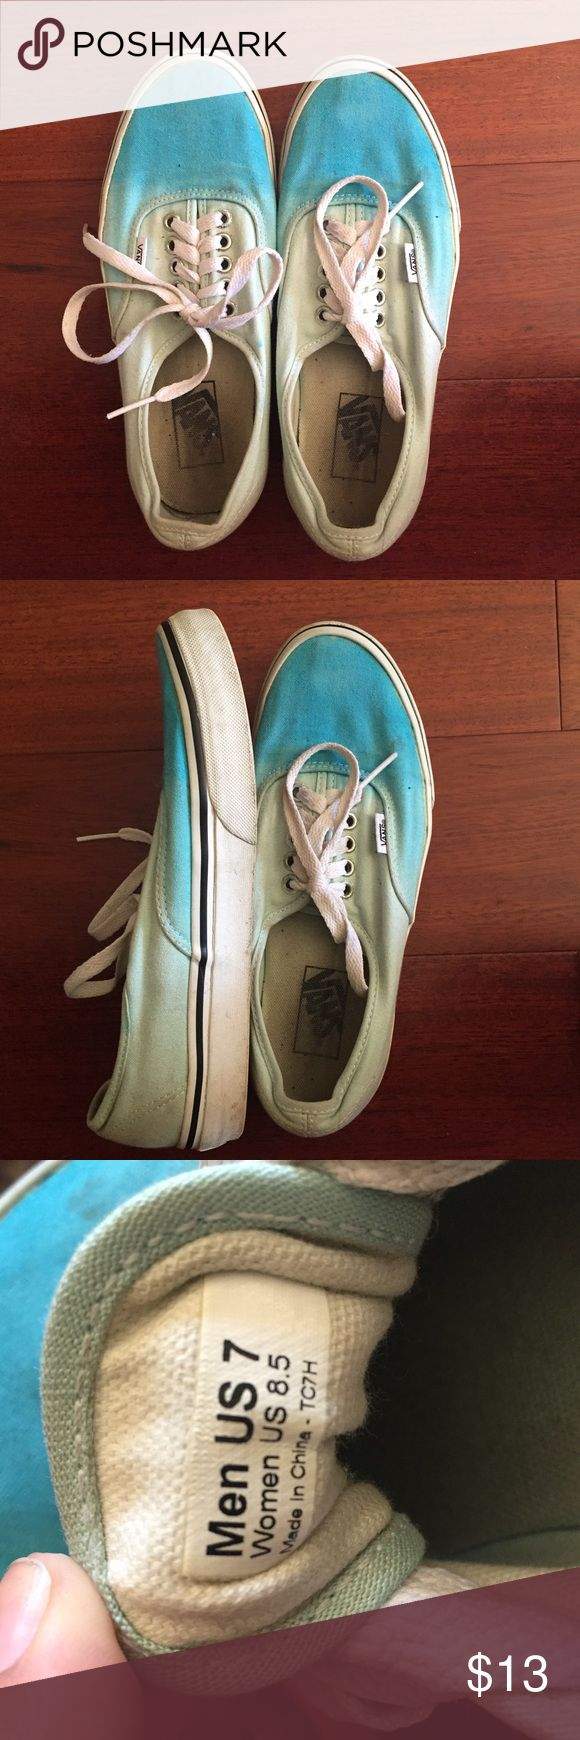 mint green vans blue to mint green ombré vans. mid condition. offers are welcome. Vans Shoes Sneakers